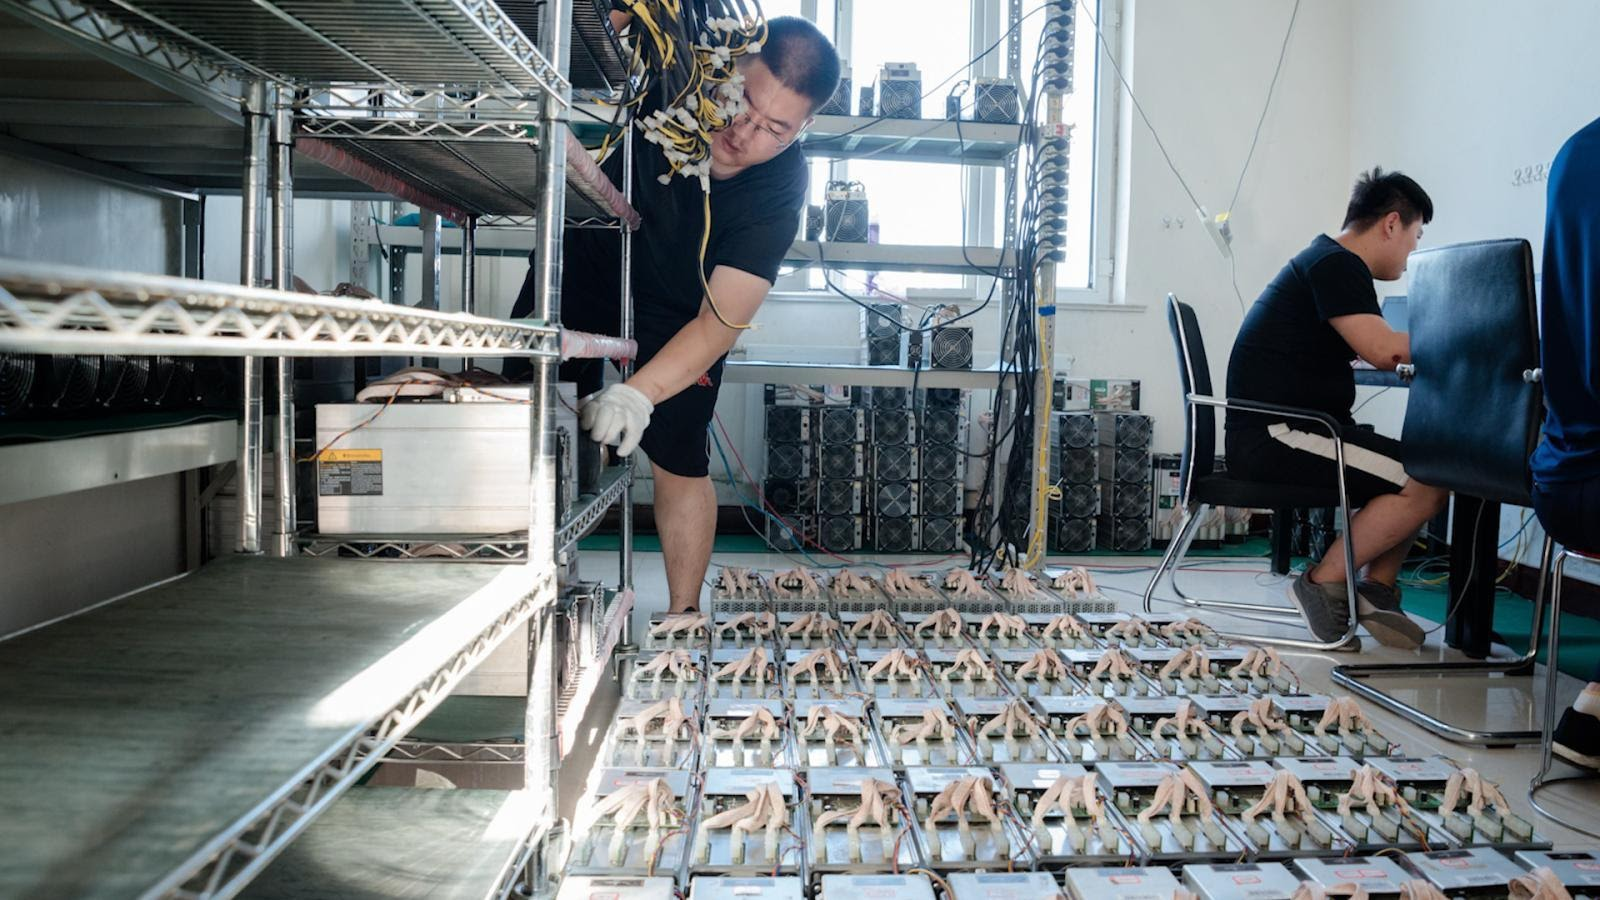 Two miners are working on maintaining their mining rig